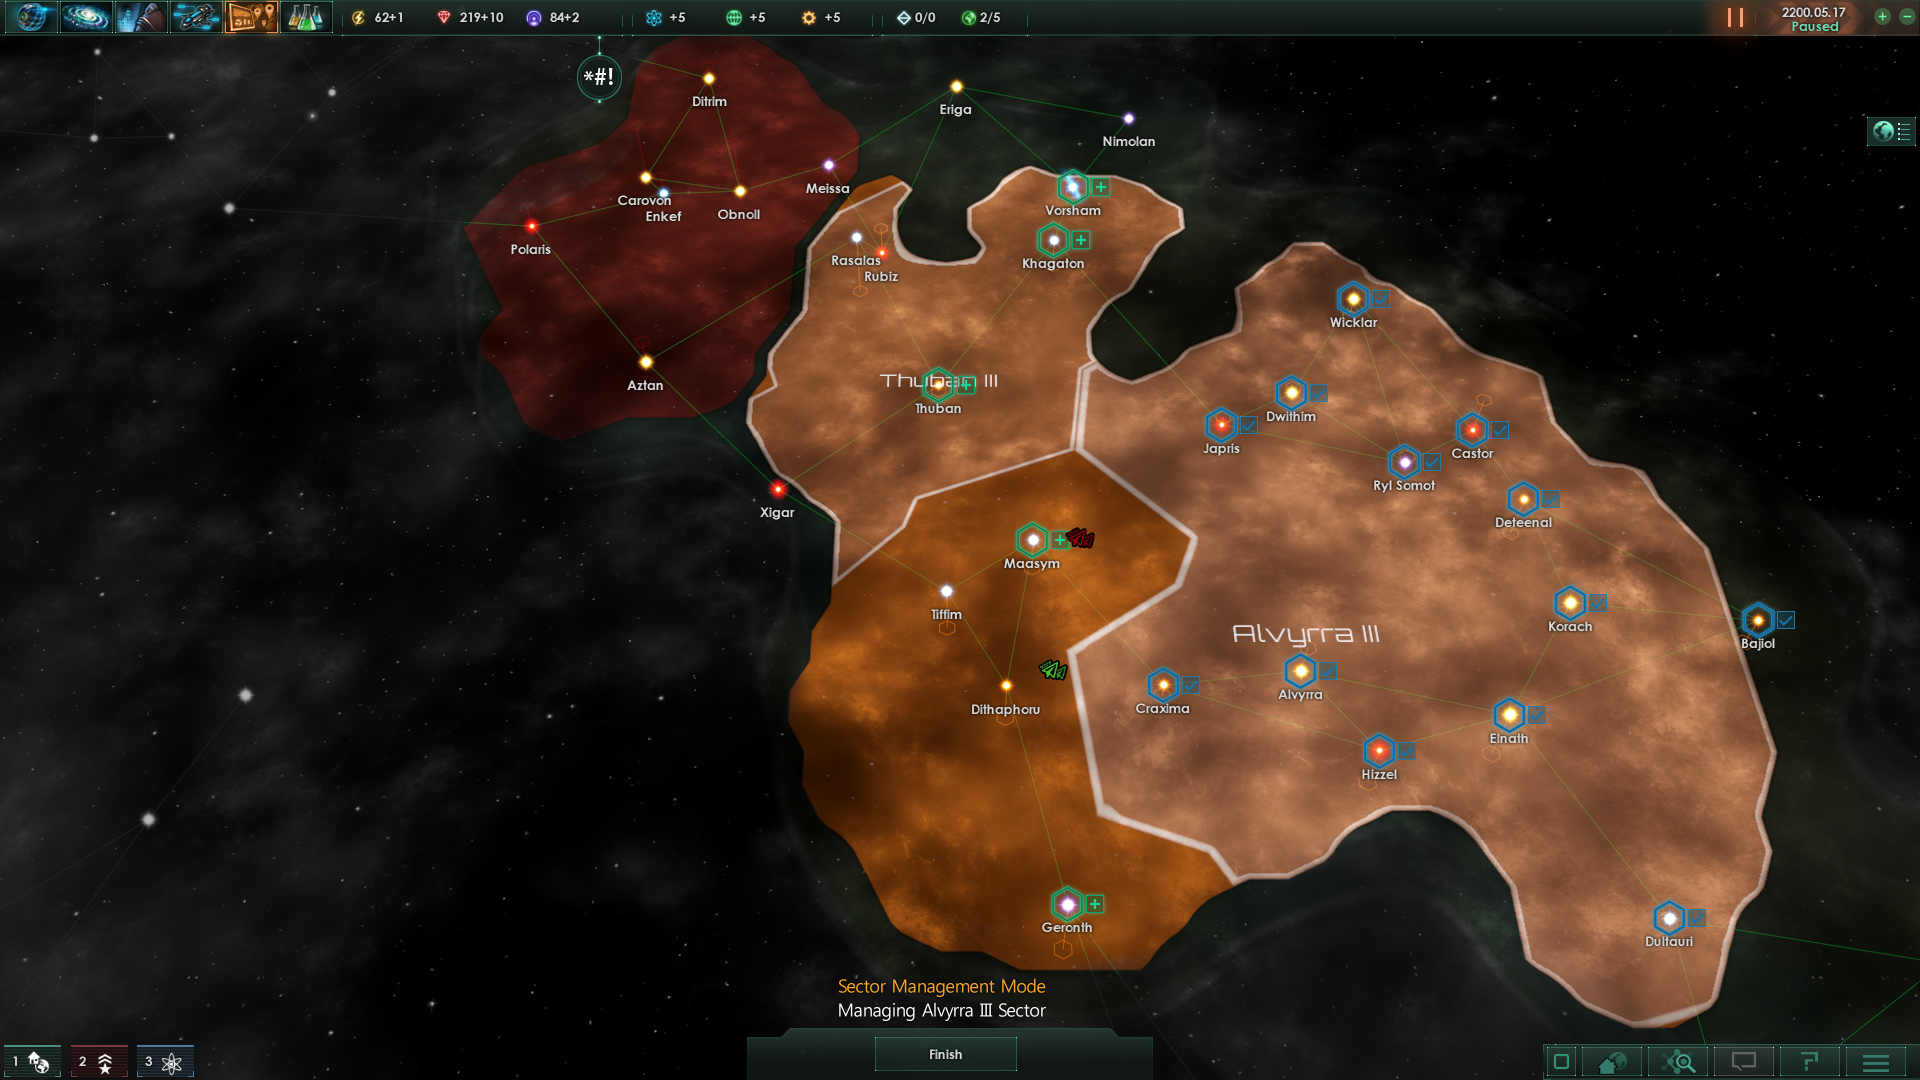 stellaris_dev_diary_21_02_20160215_edit_sectors.jpg